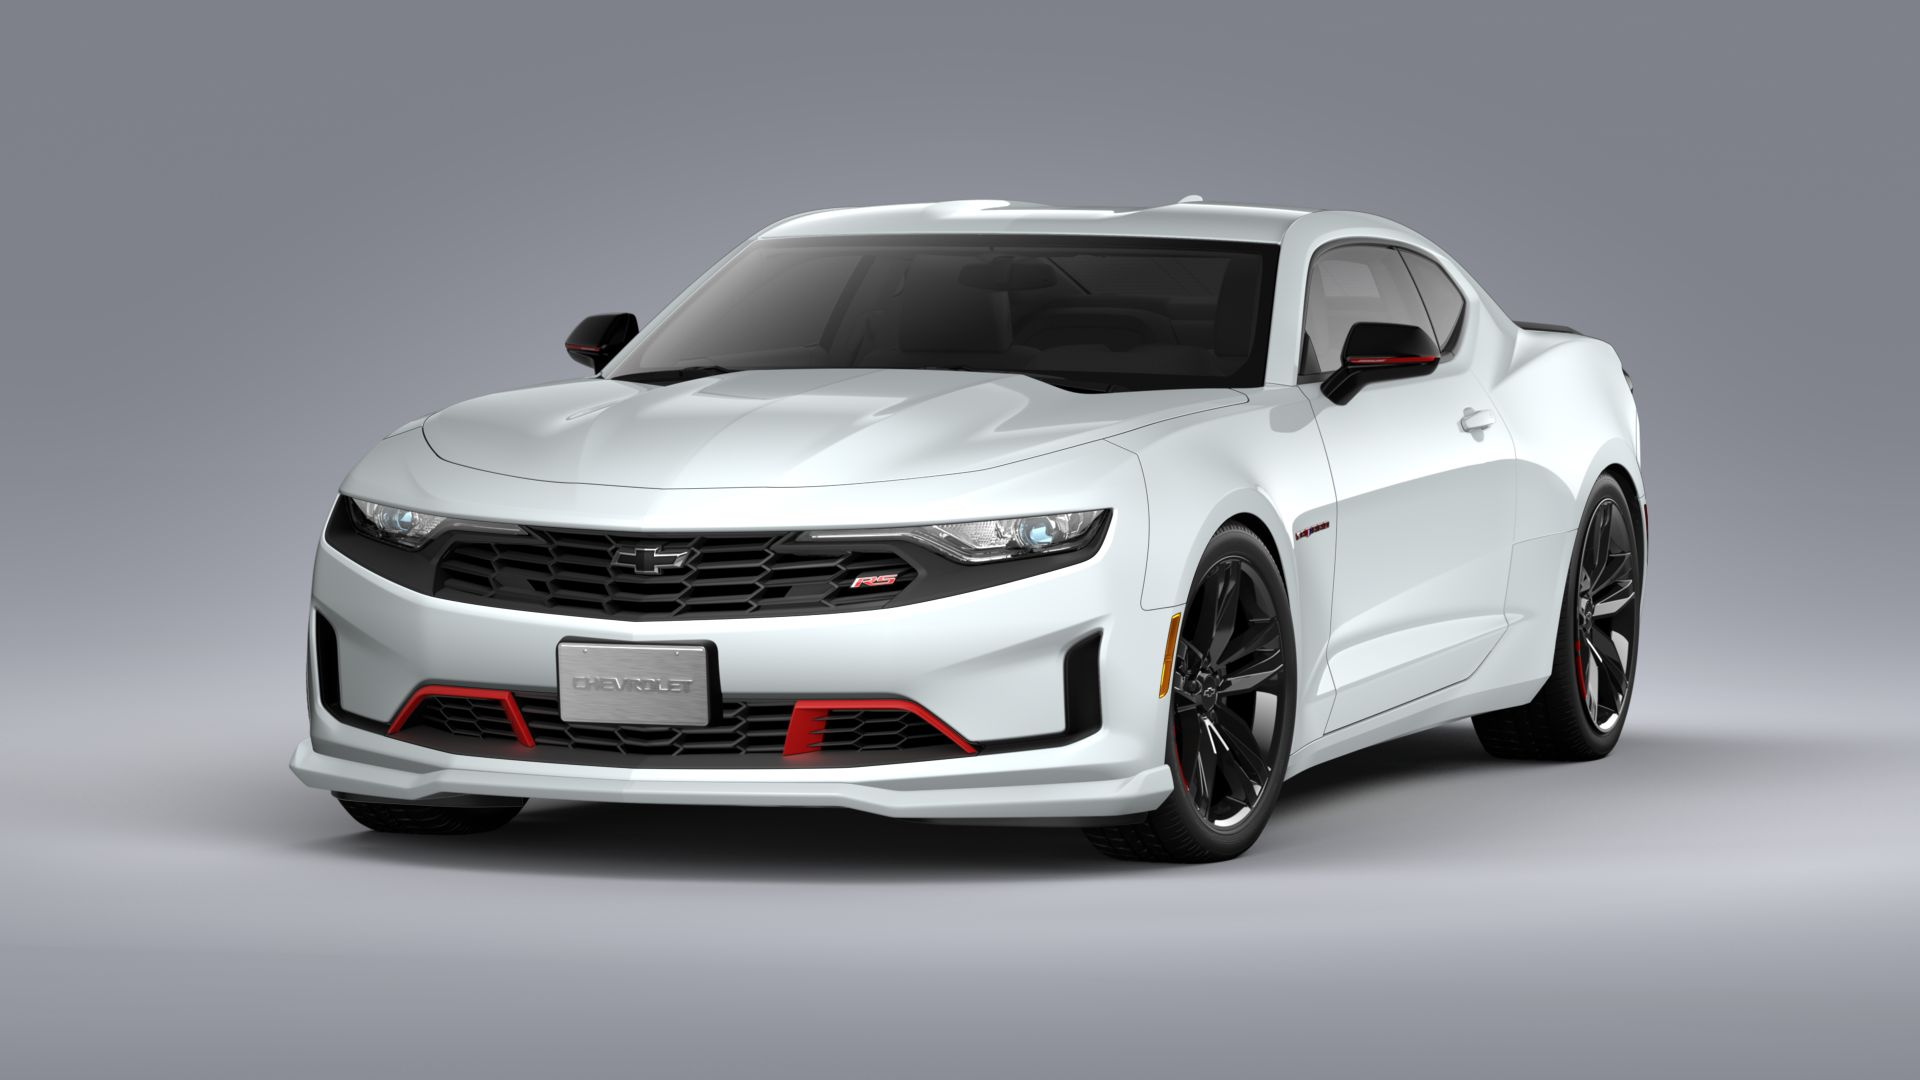 New 2021 Chevrolet Camaro For Sale At Roy Robinson Chevrolet Vin 1g1fb1rs4m0128450